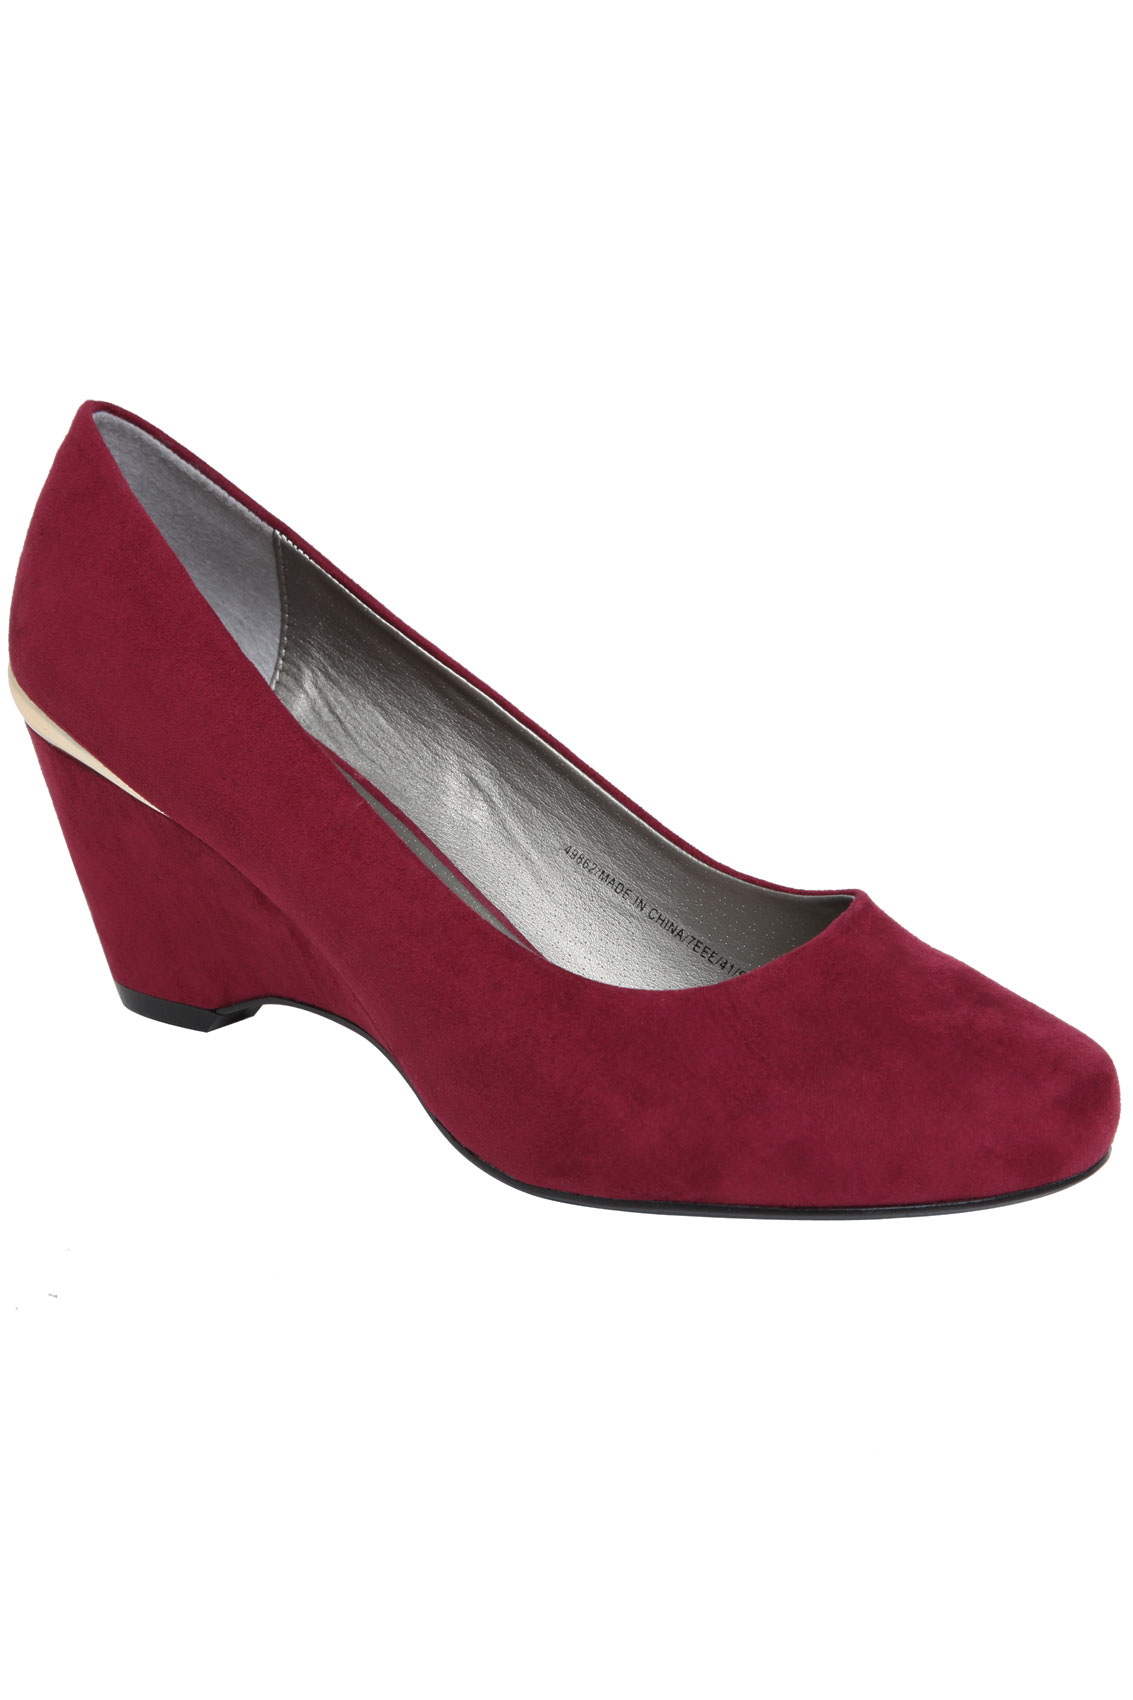 burgundy suedette wedge shoe with gold trim in eee fit